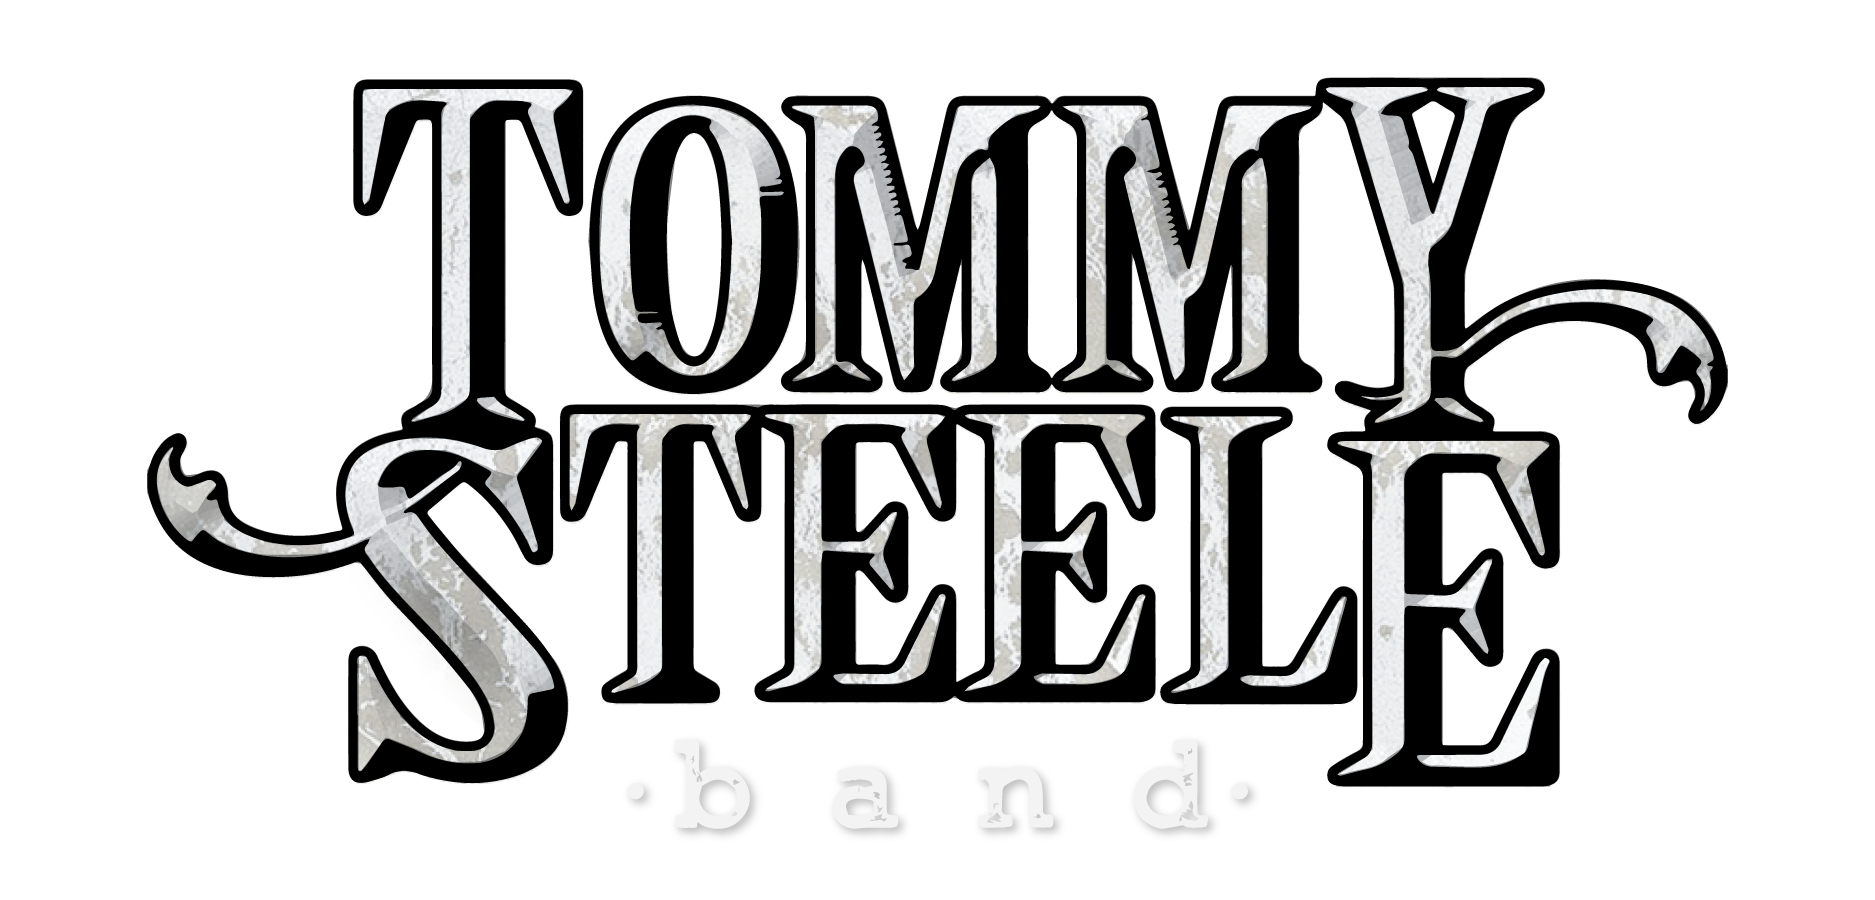 Tommy steele band how. Record clipart rockin